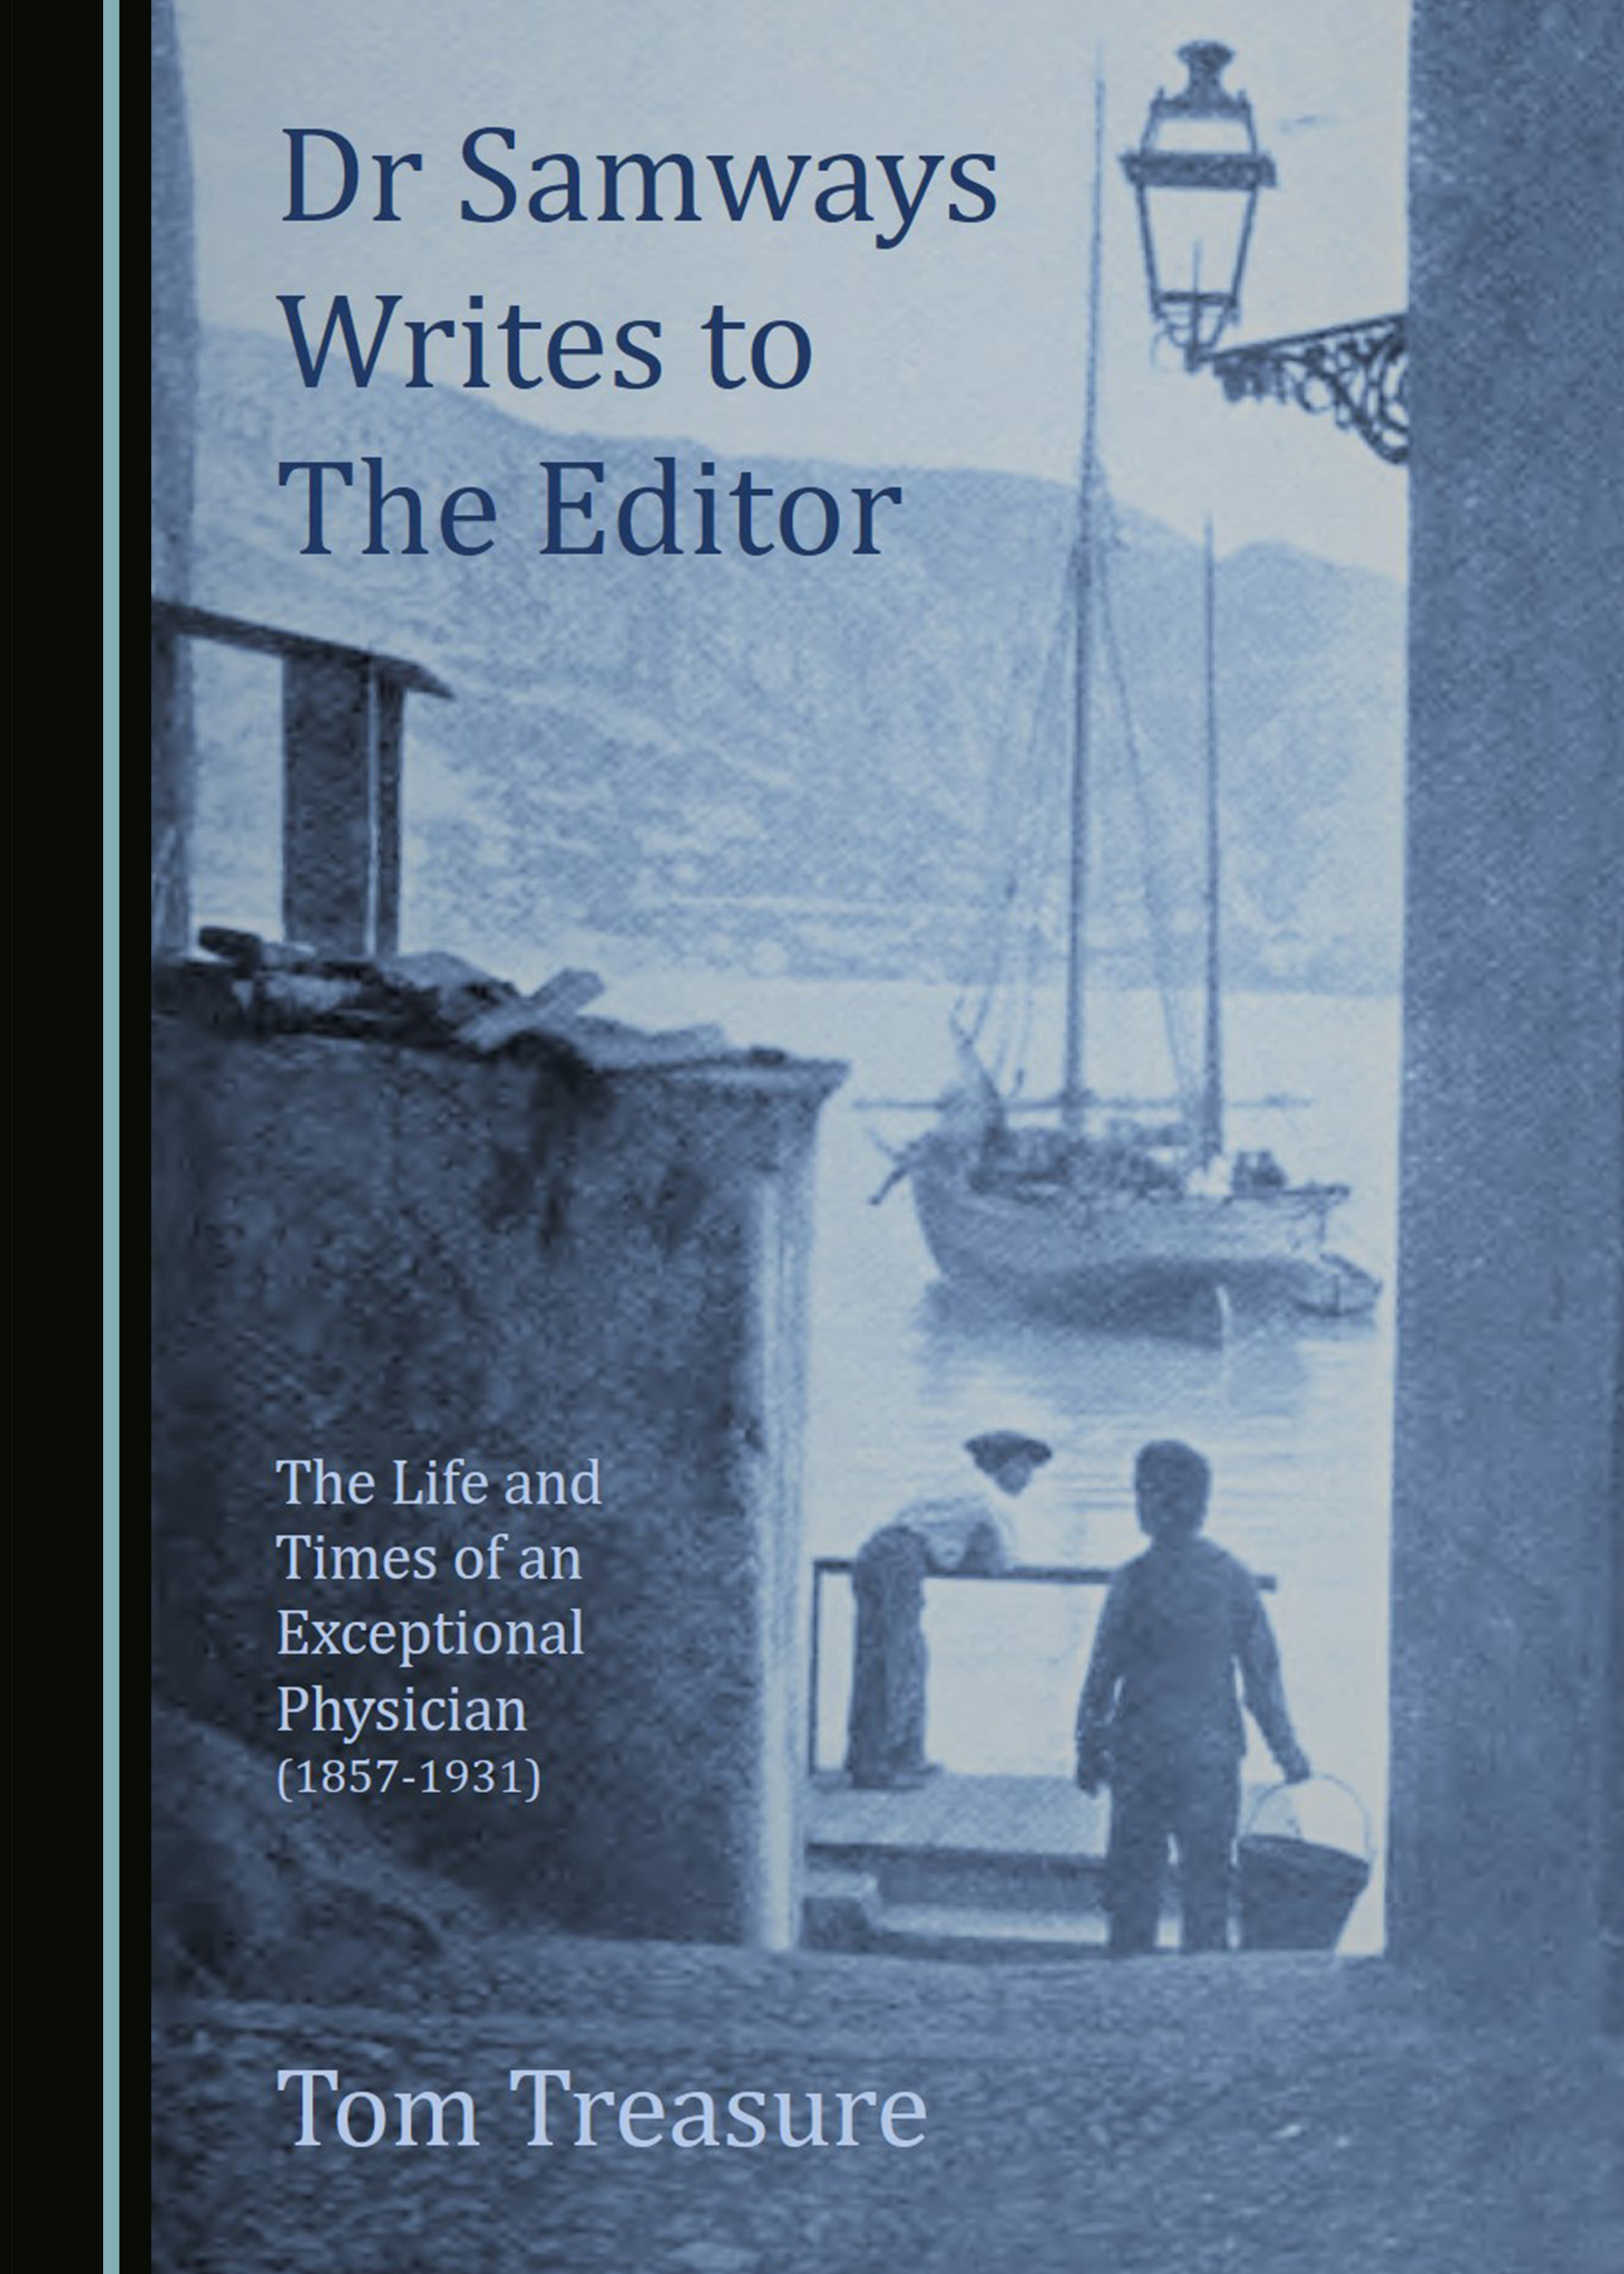 Dr Samways Writes to the Editor: The Life and Times of an Exceptional Physician (1857-1931)